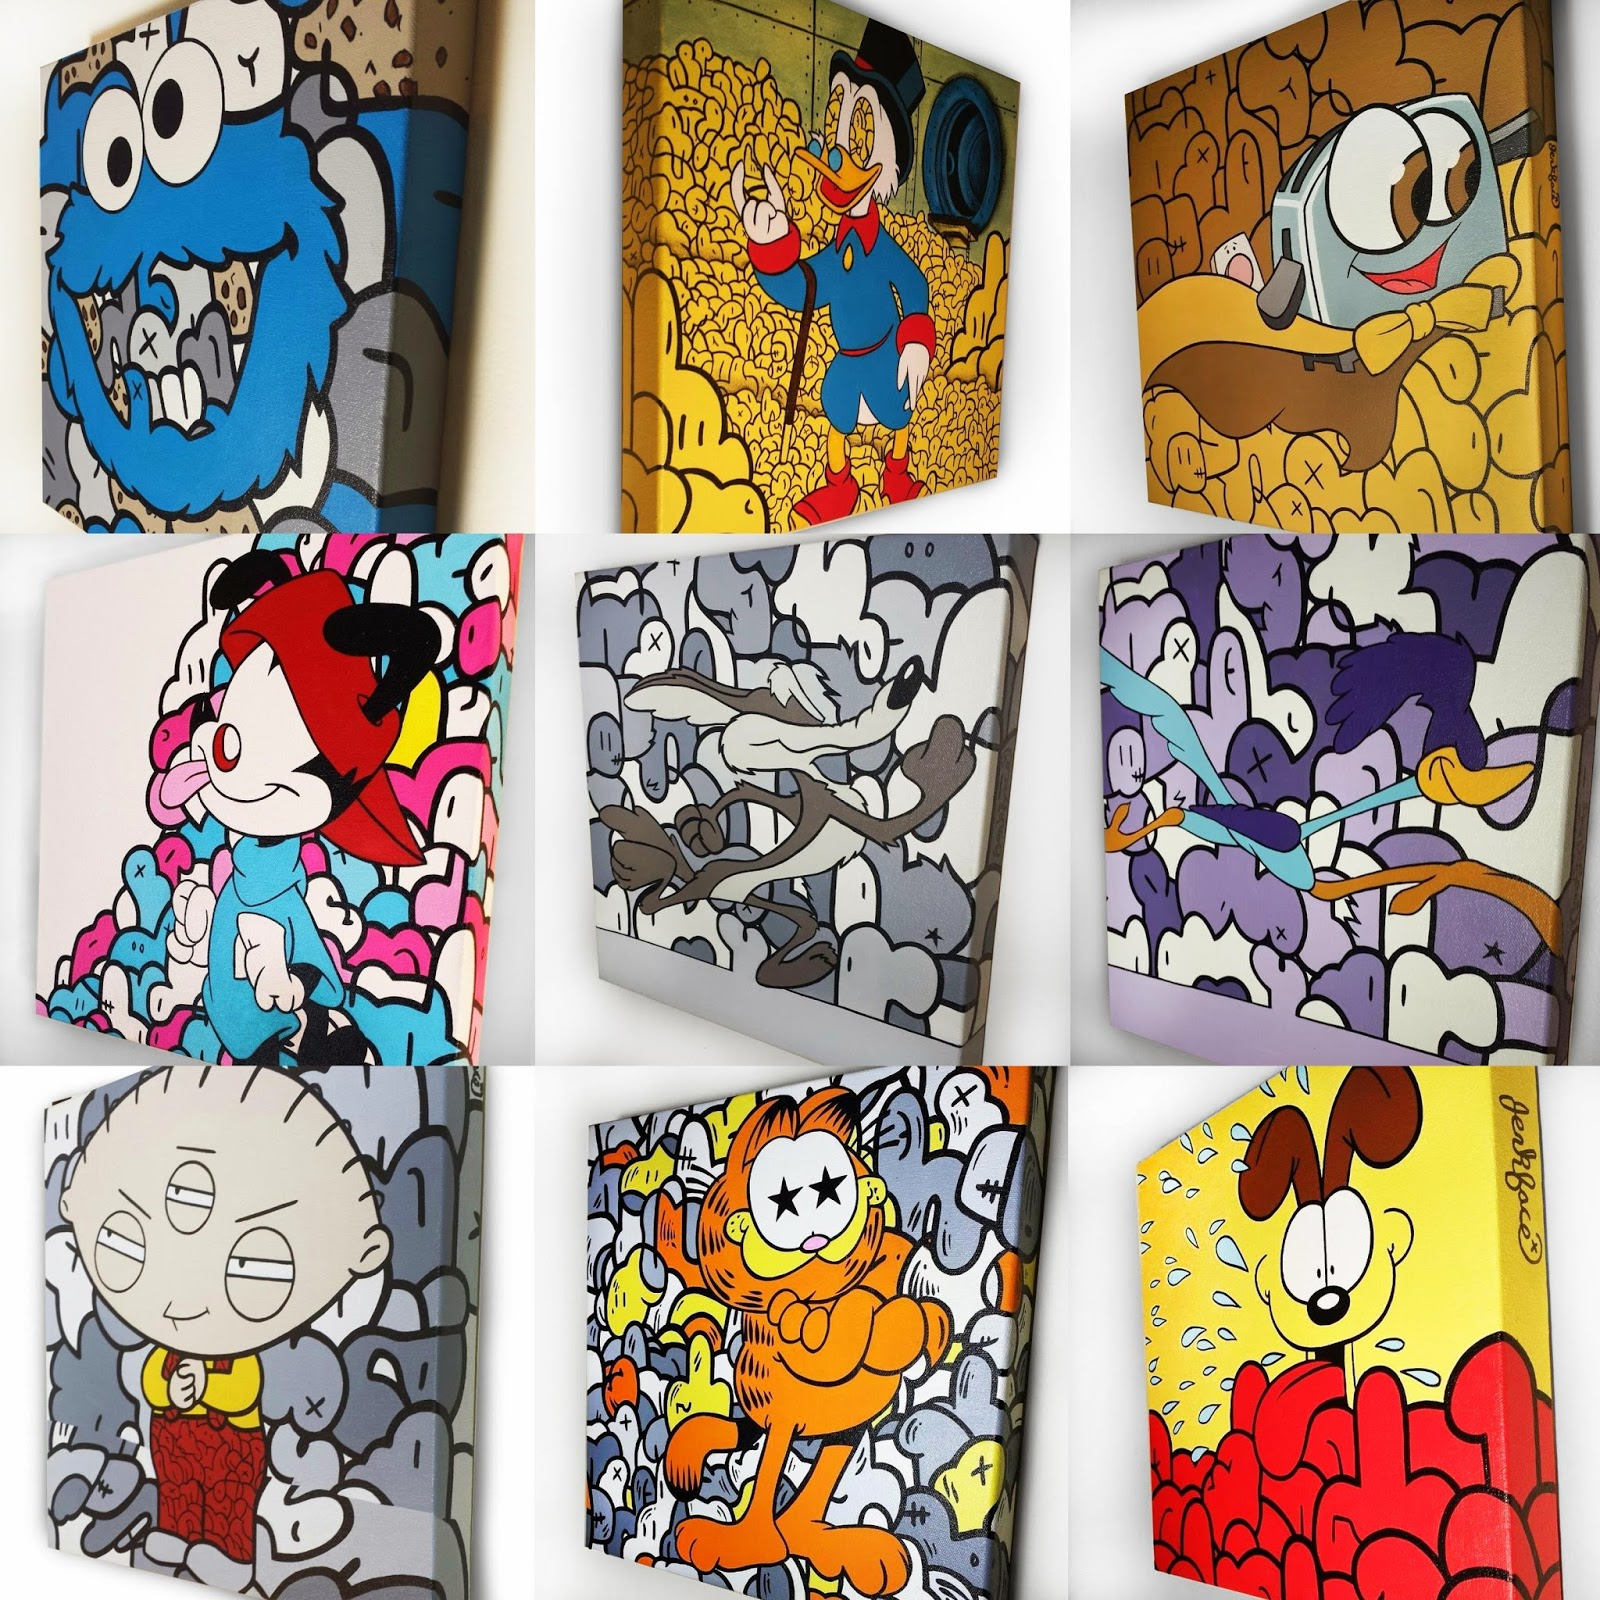 """30 Days of Jerk"" Pop Culture Painting Series by Jerkface - Sesame Street Cookie Monster, DuckTales Scrooge McDuck, Brave Little Toaster, Animaniacs, Wylie E Coyote & Road Runner, Family Guy, Garfield & Odie"